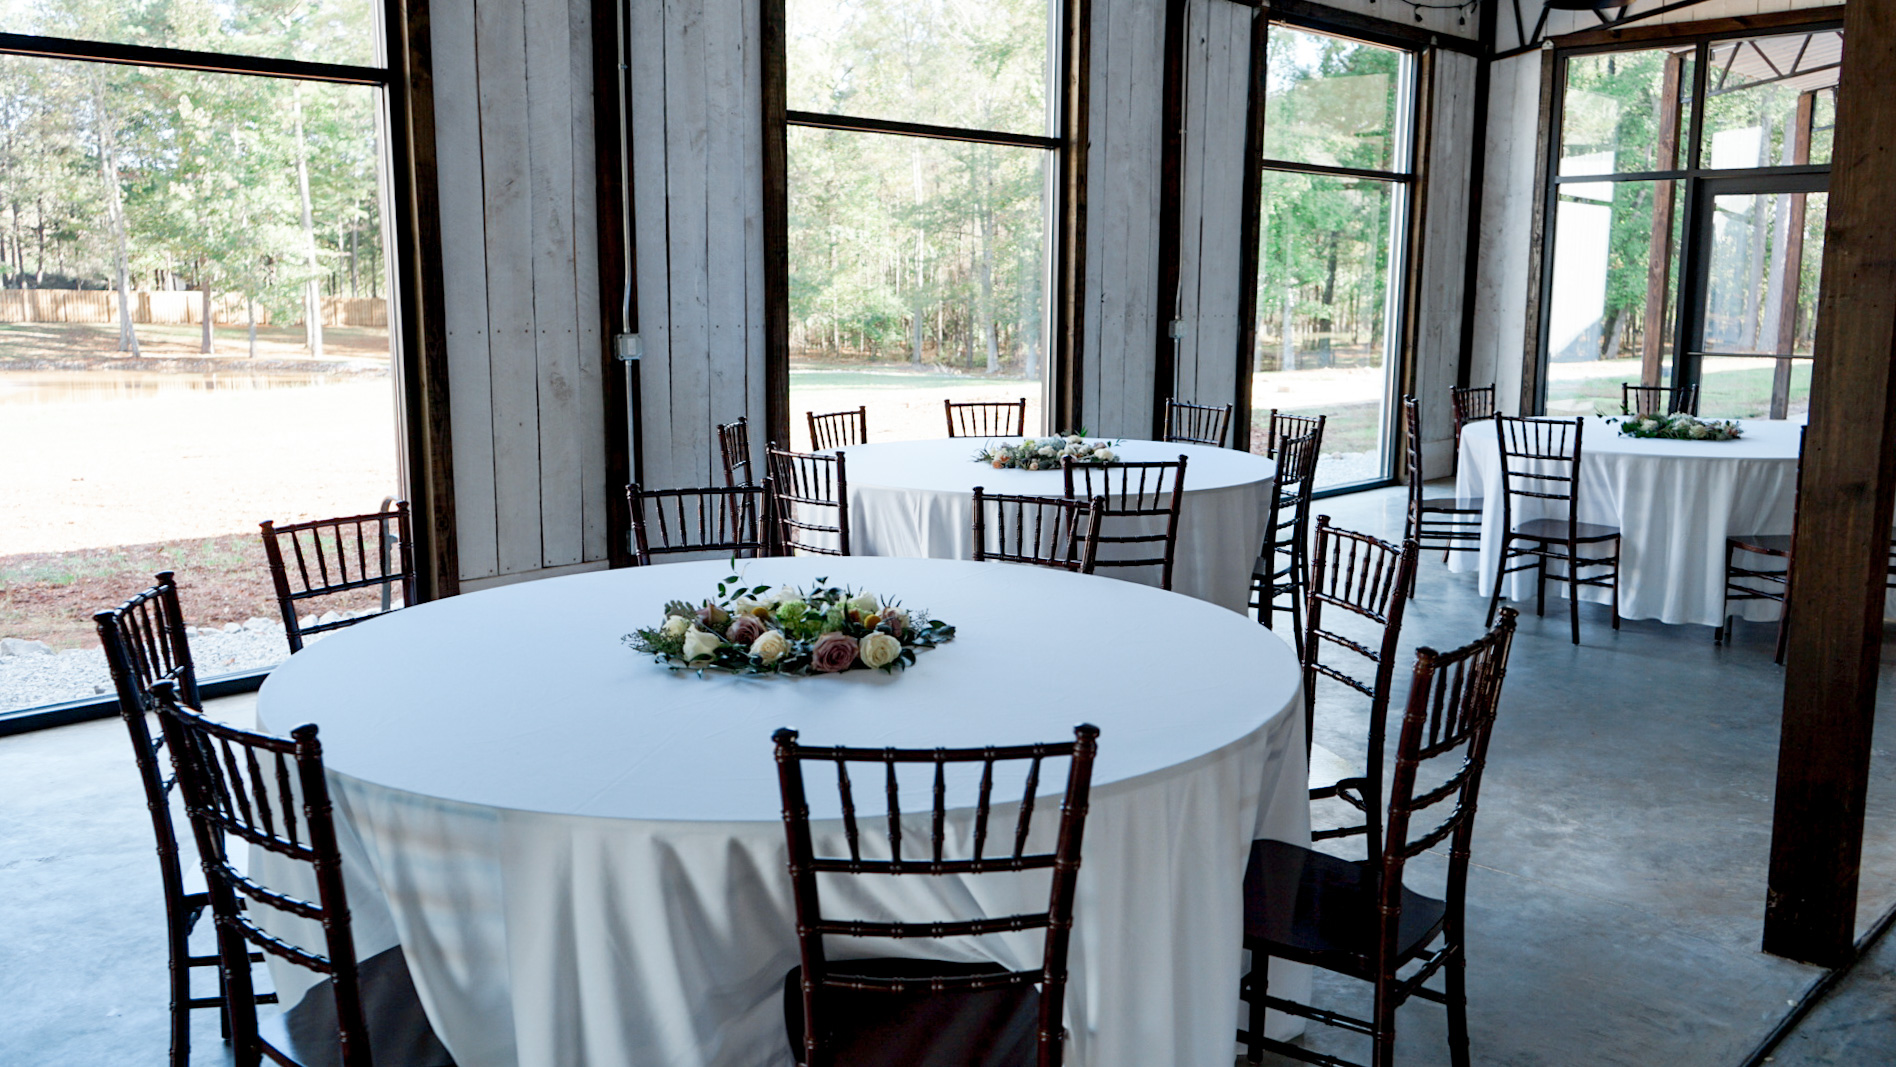 Tables, chairs, and tablecloths available for use